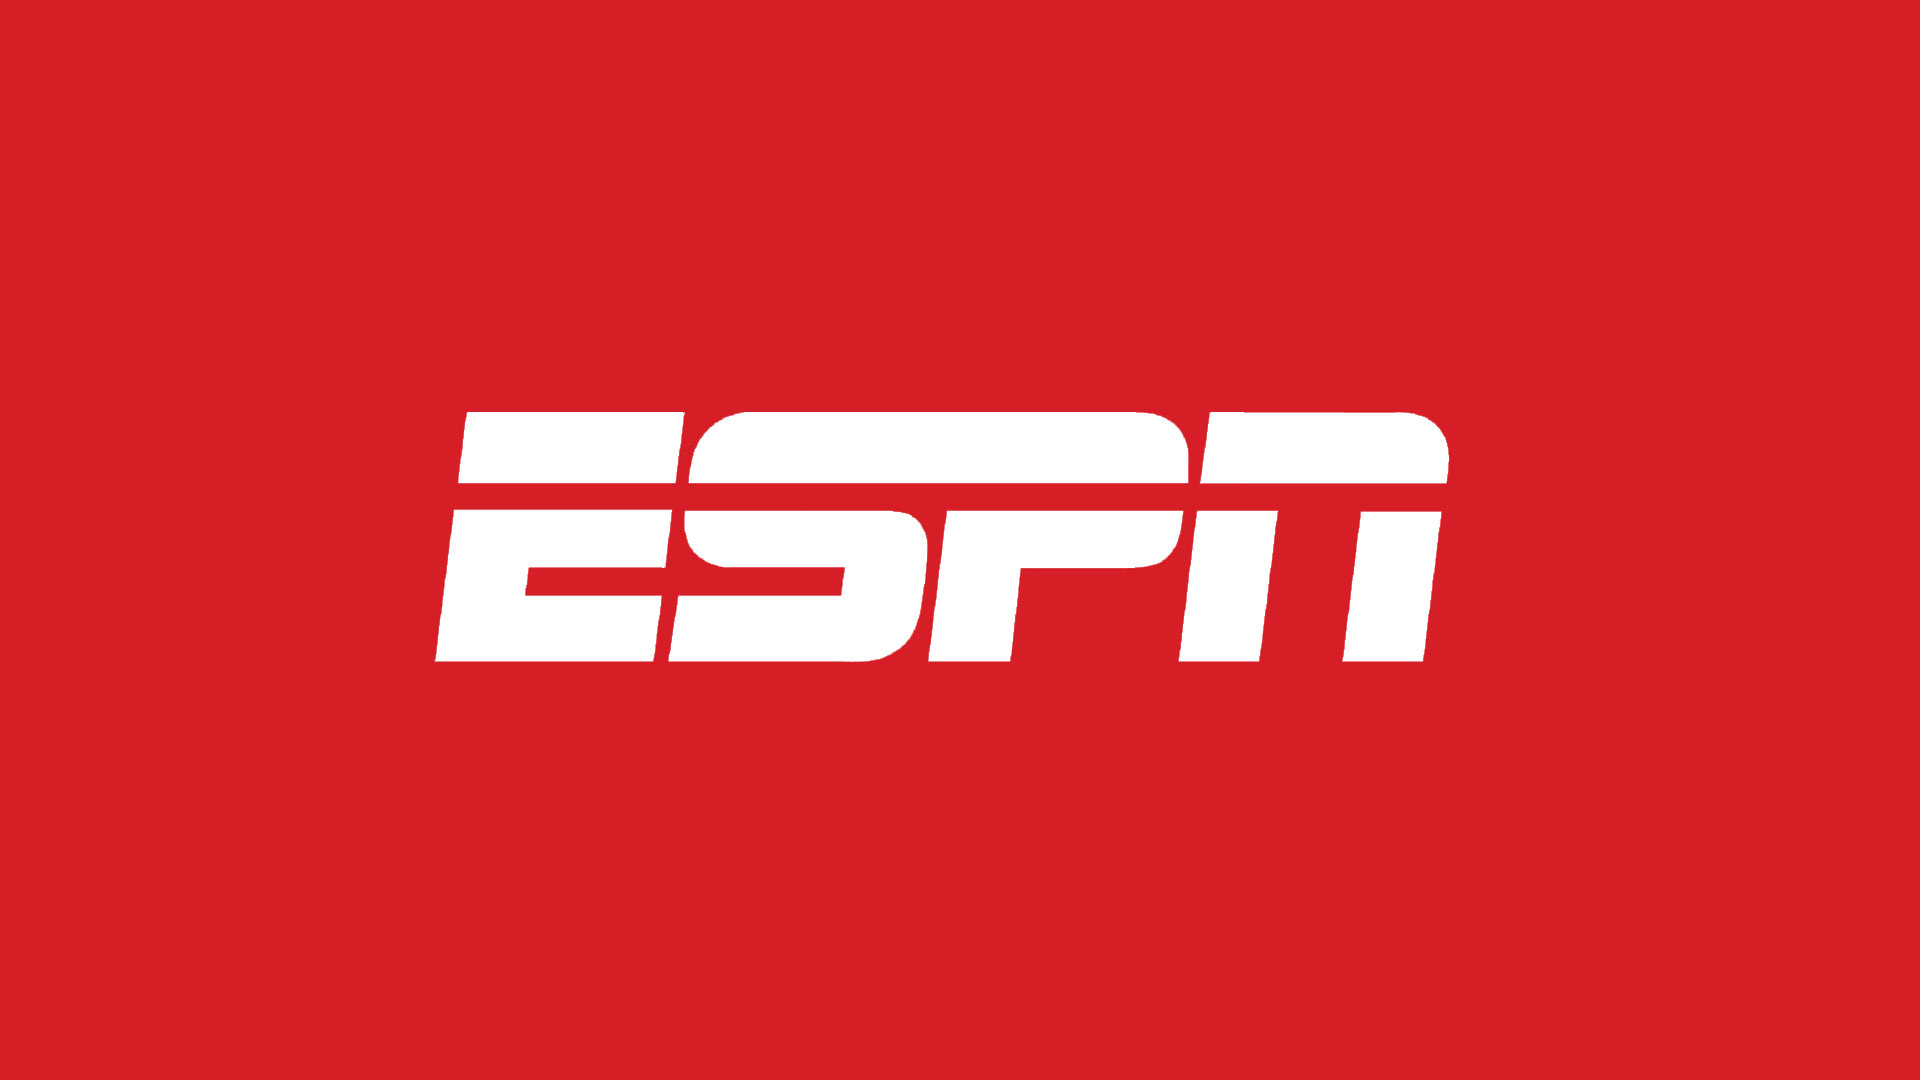 regarder espn en direct live 100 gratuit tv direct. Black Bedroom Furniture Sets. Home Design Ideas